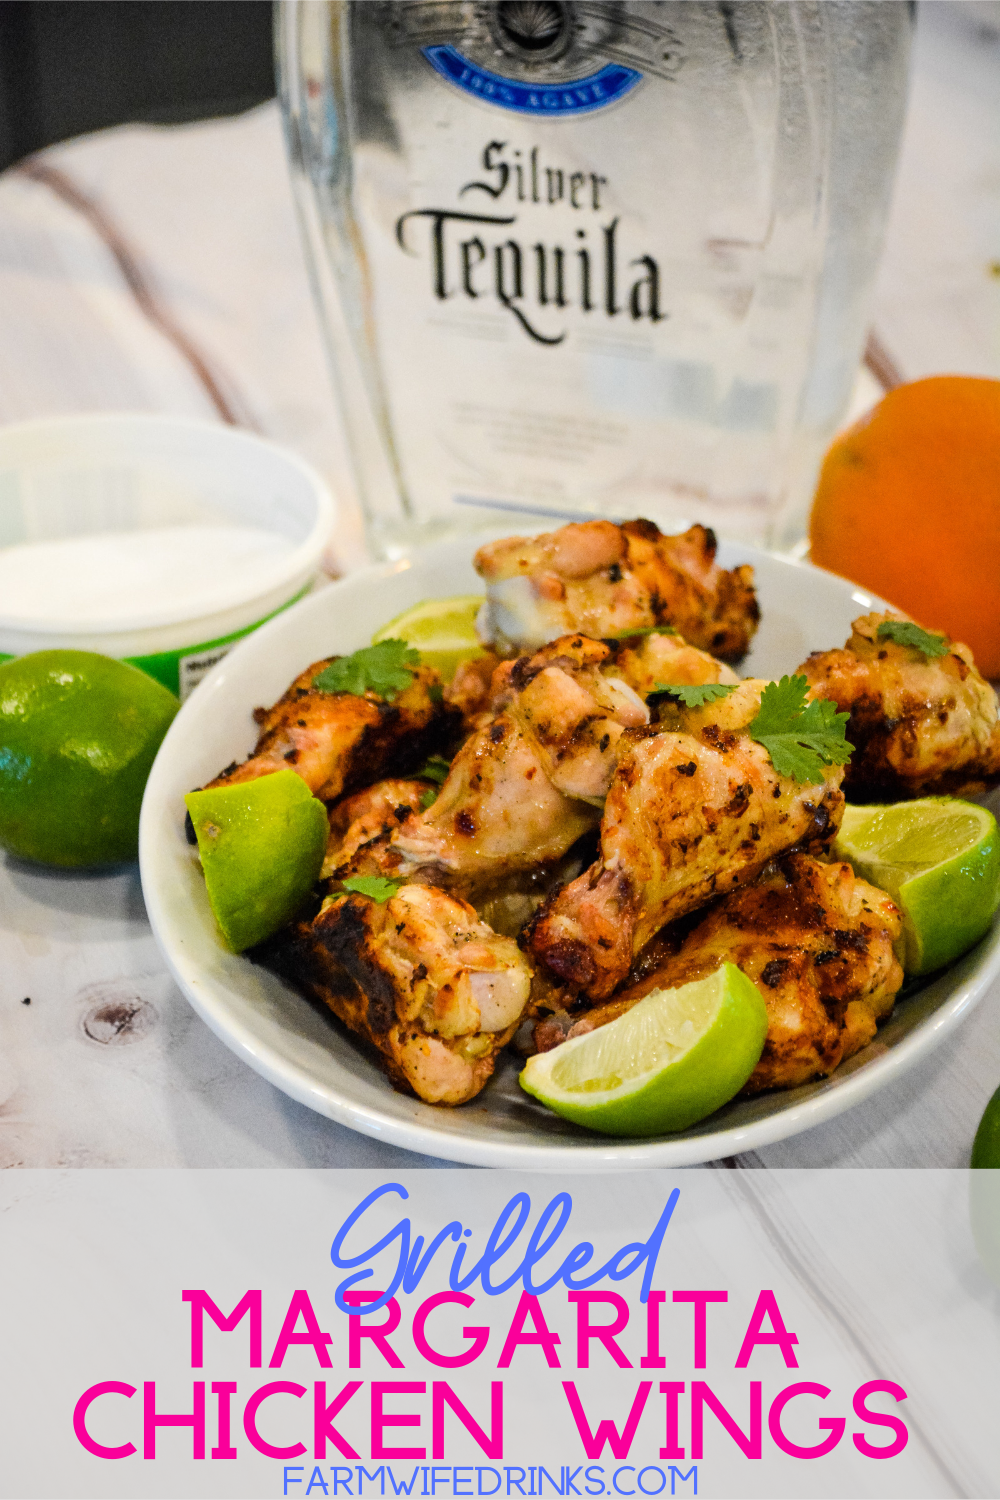 Grilled Margarita Chicken Wings are marinated in tequila, lime and orange juices, chipotle seasoning and salt and then grilled or smoked to perfection.